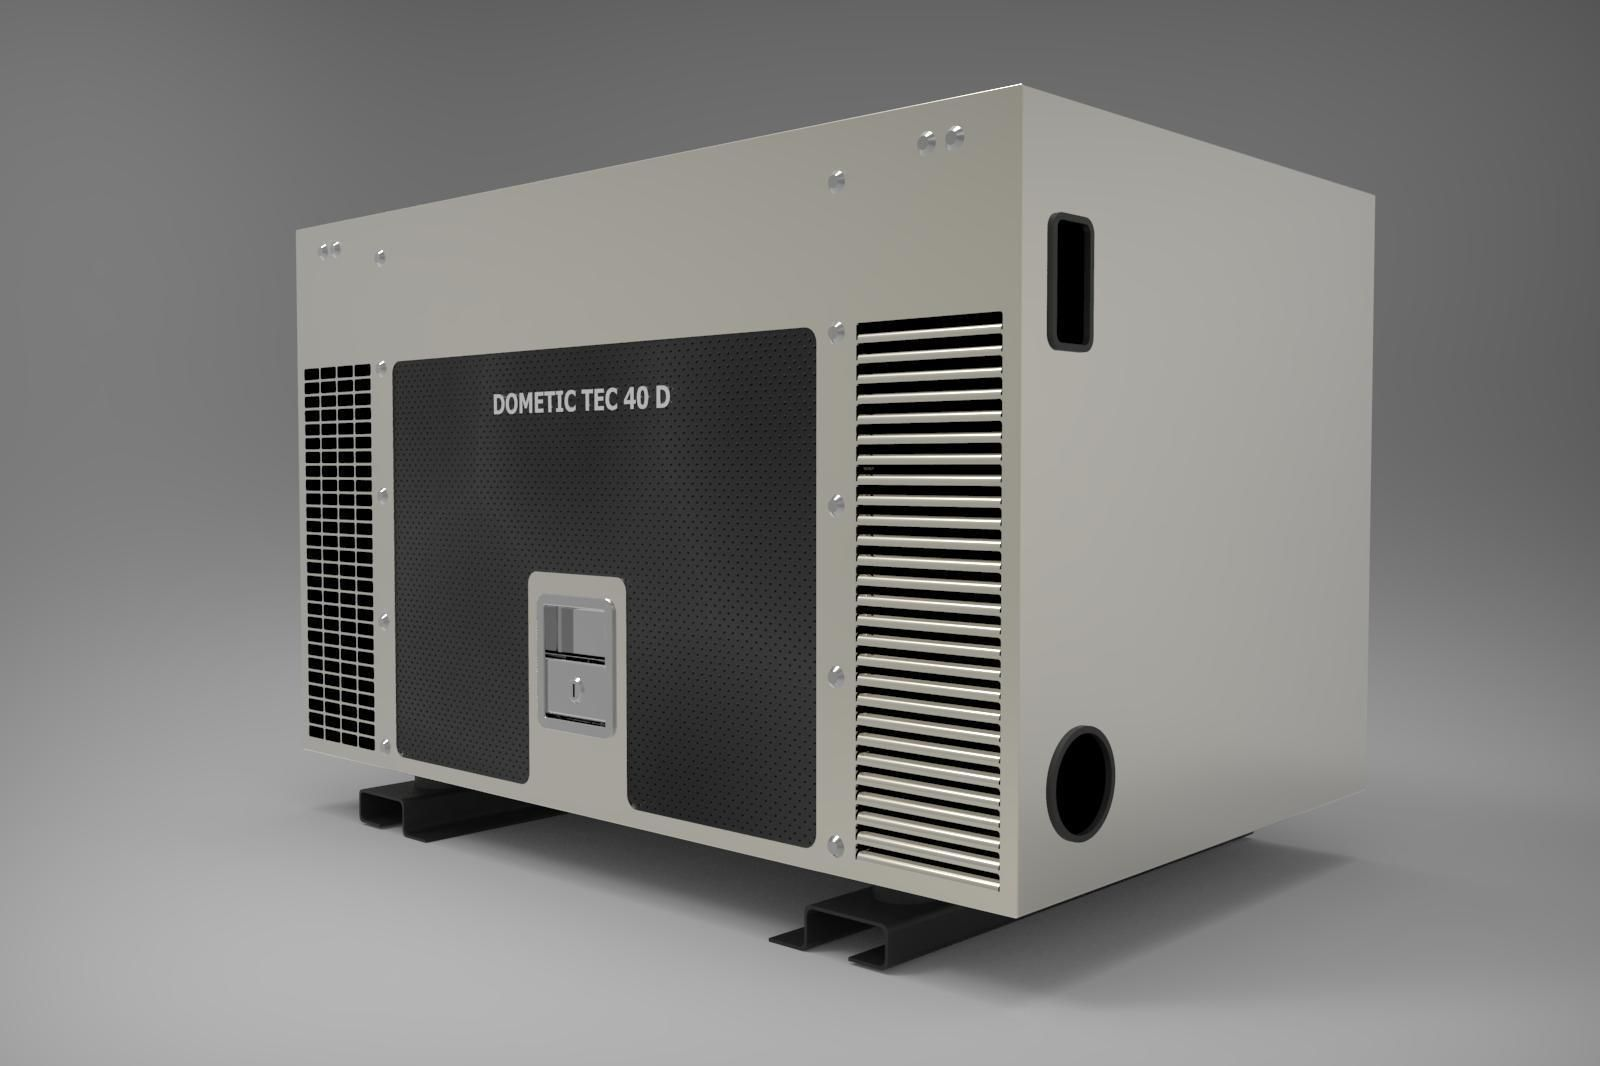 Generator Dometic For Motorhome 3d Model Max Fbx Sldprt